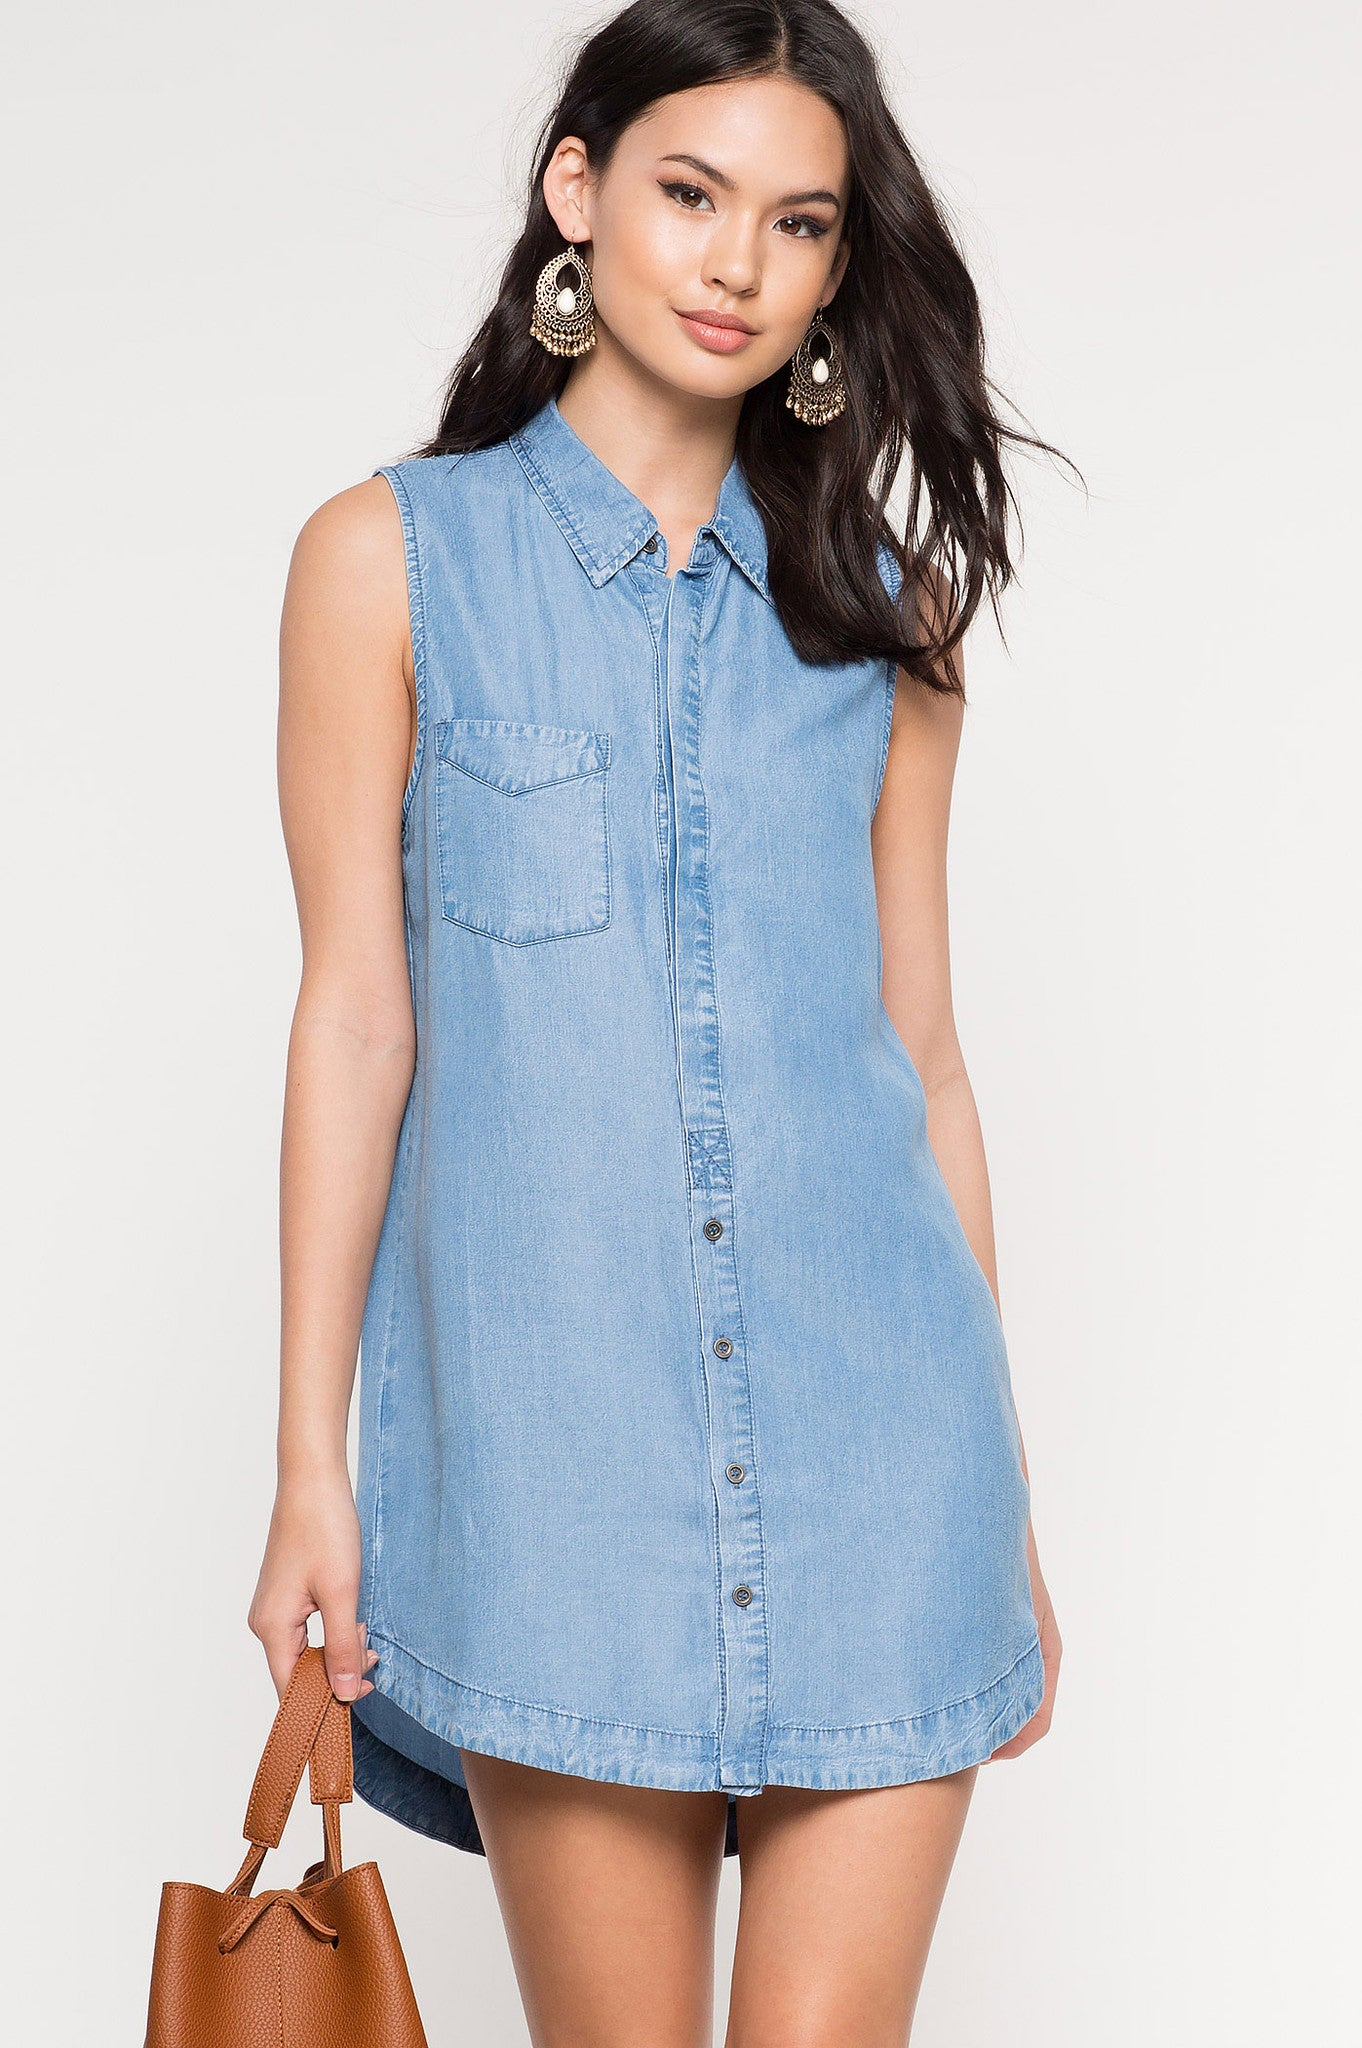 Memdalet women 39 s sleeveless chambray shirt dress for Chambray shirt women